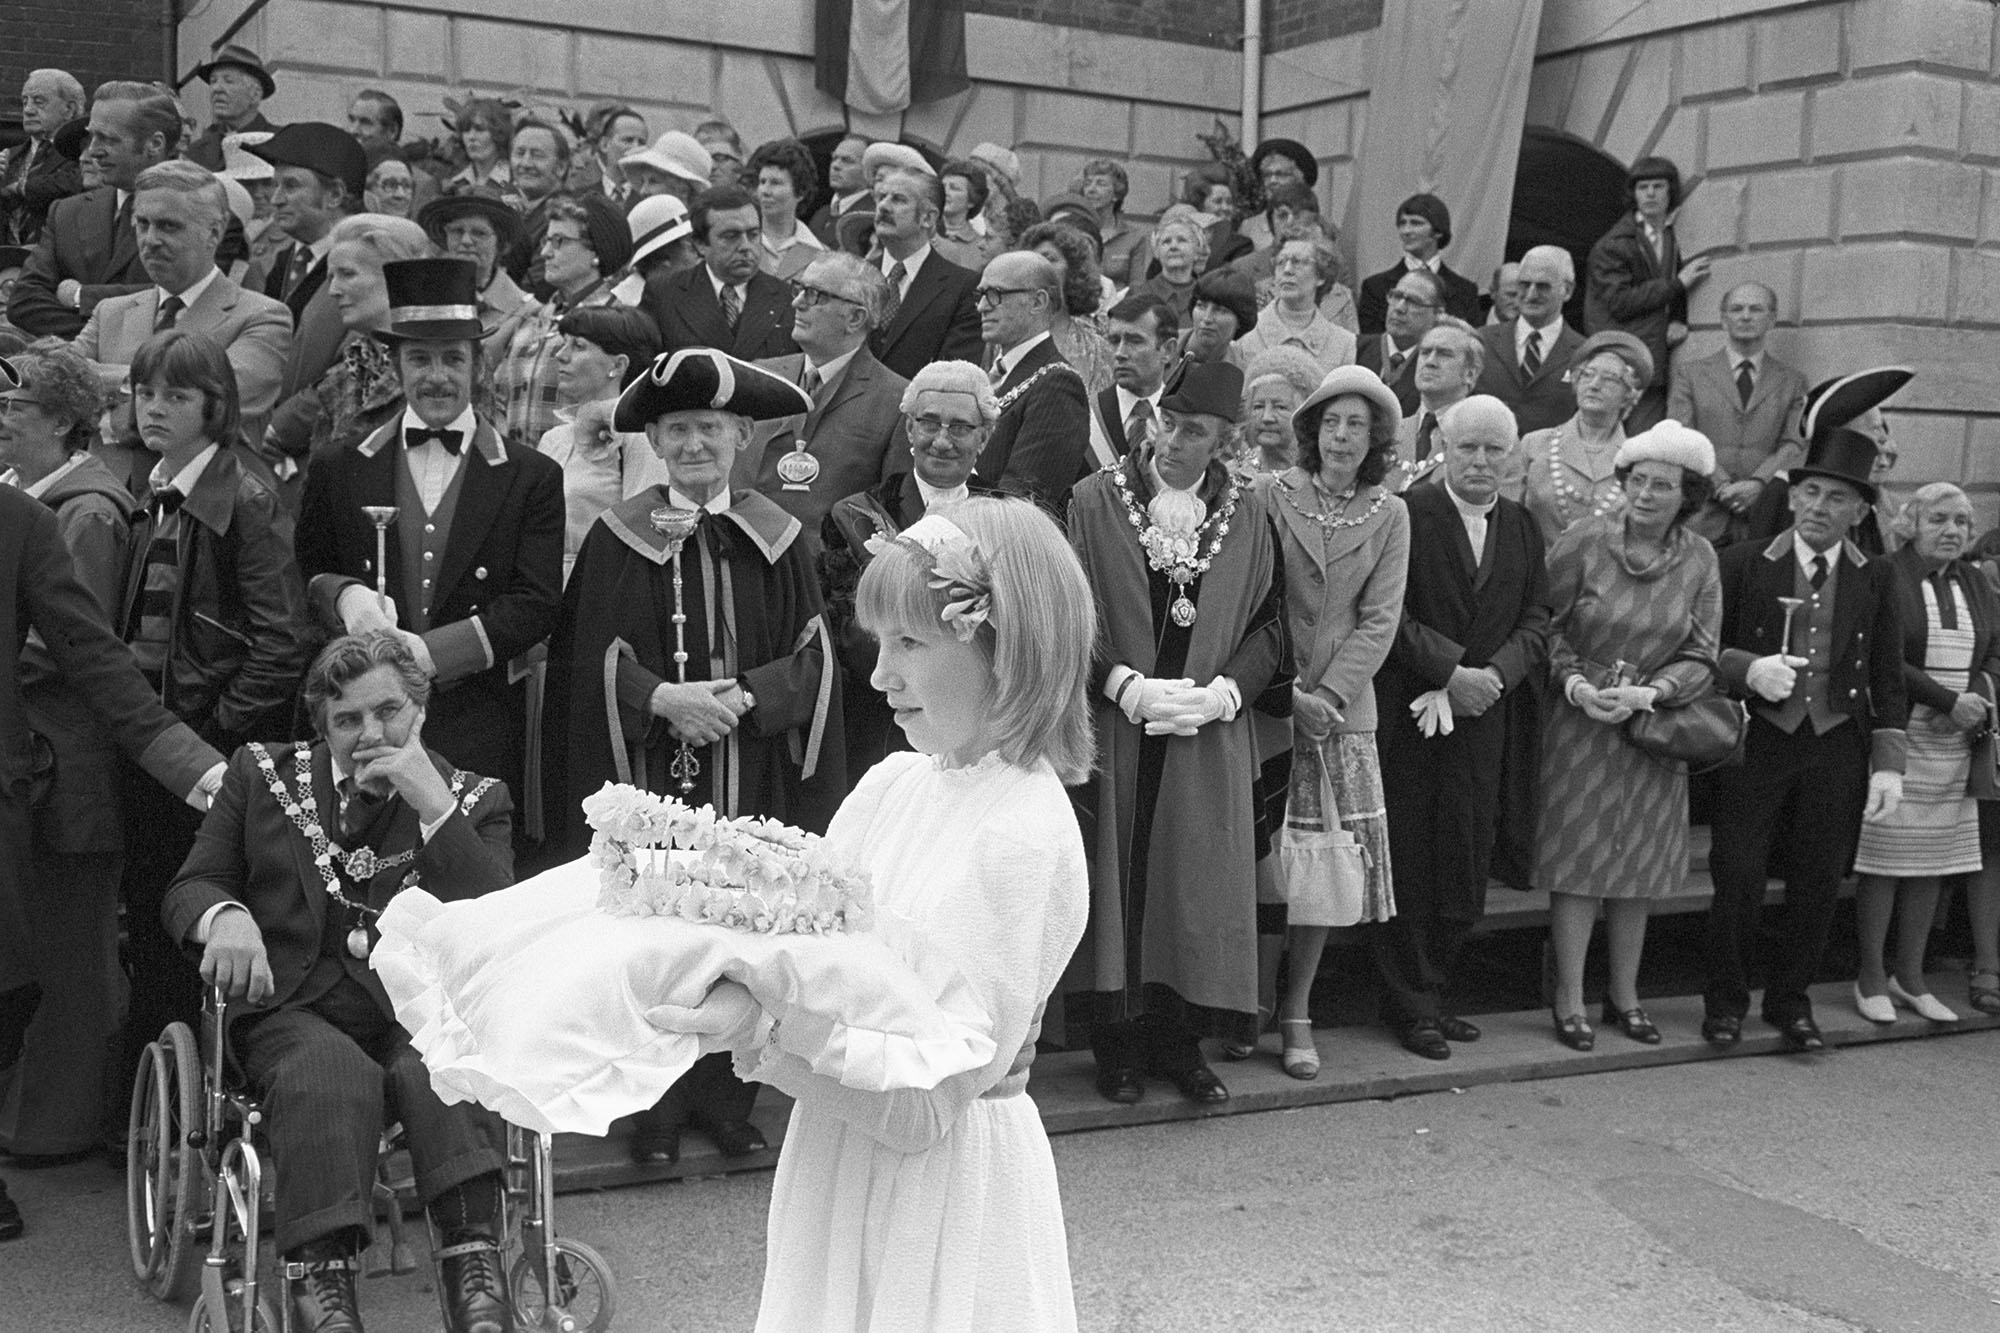 Crowner waiting in front of mayors and dignitaries, holding crown on cushion. <br /> [Tonya Copp walking past Mayors, dignitaries and their wives with the Mayfair crown on a cushion, to crown the May Queen at Torrington Mayfair.]